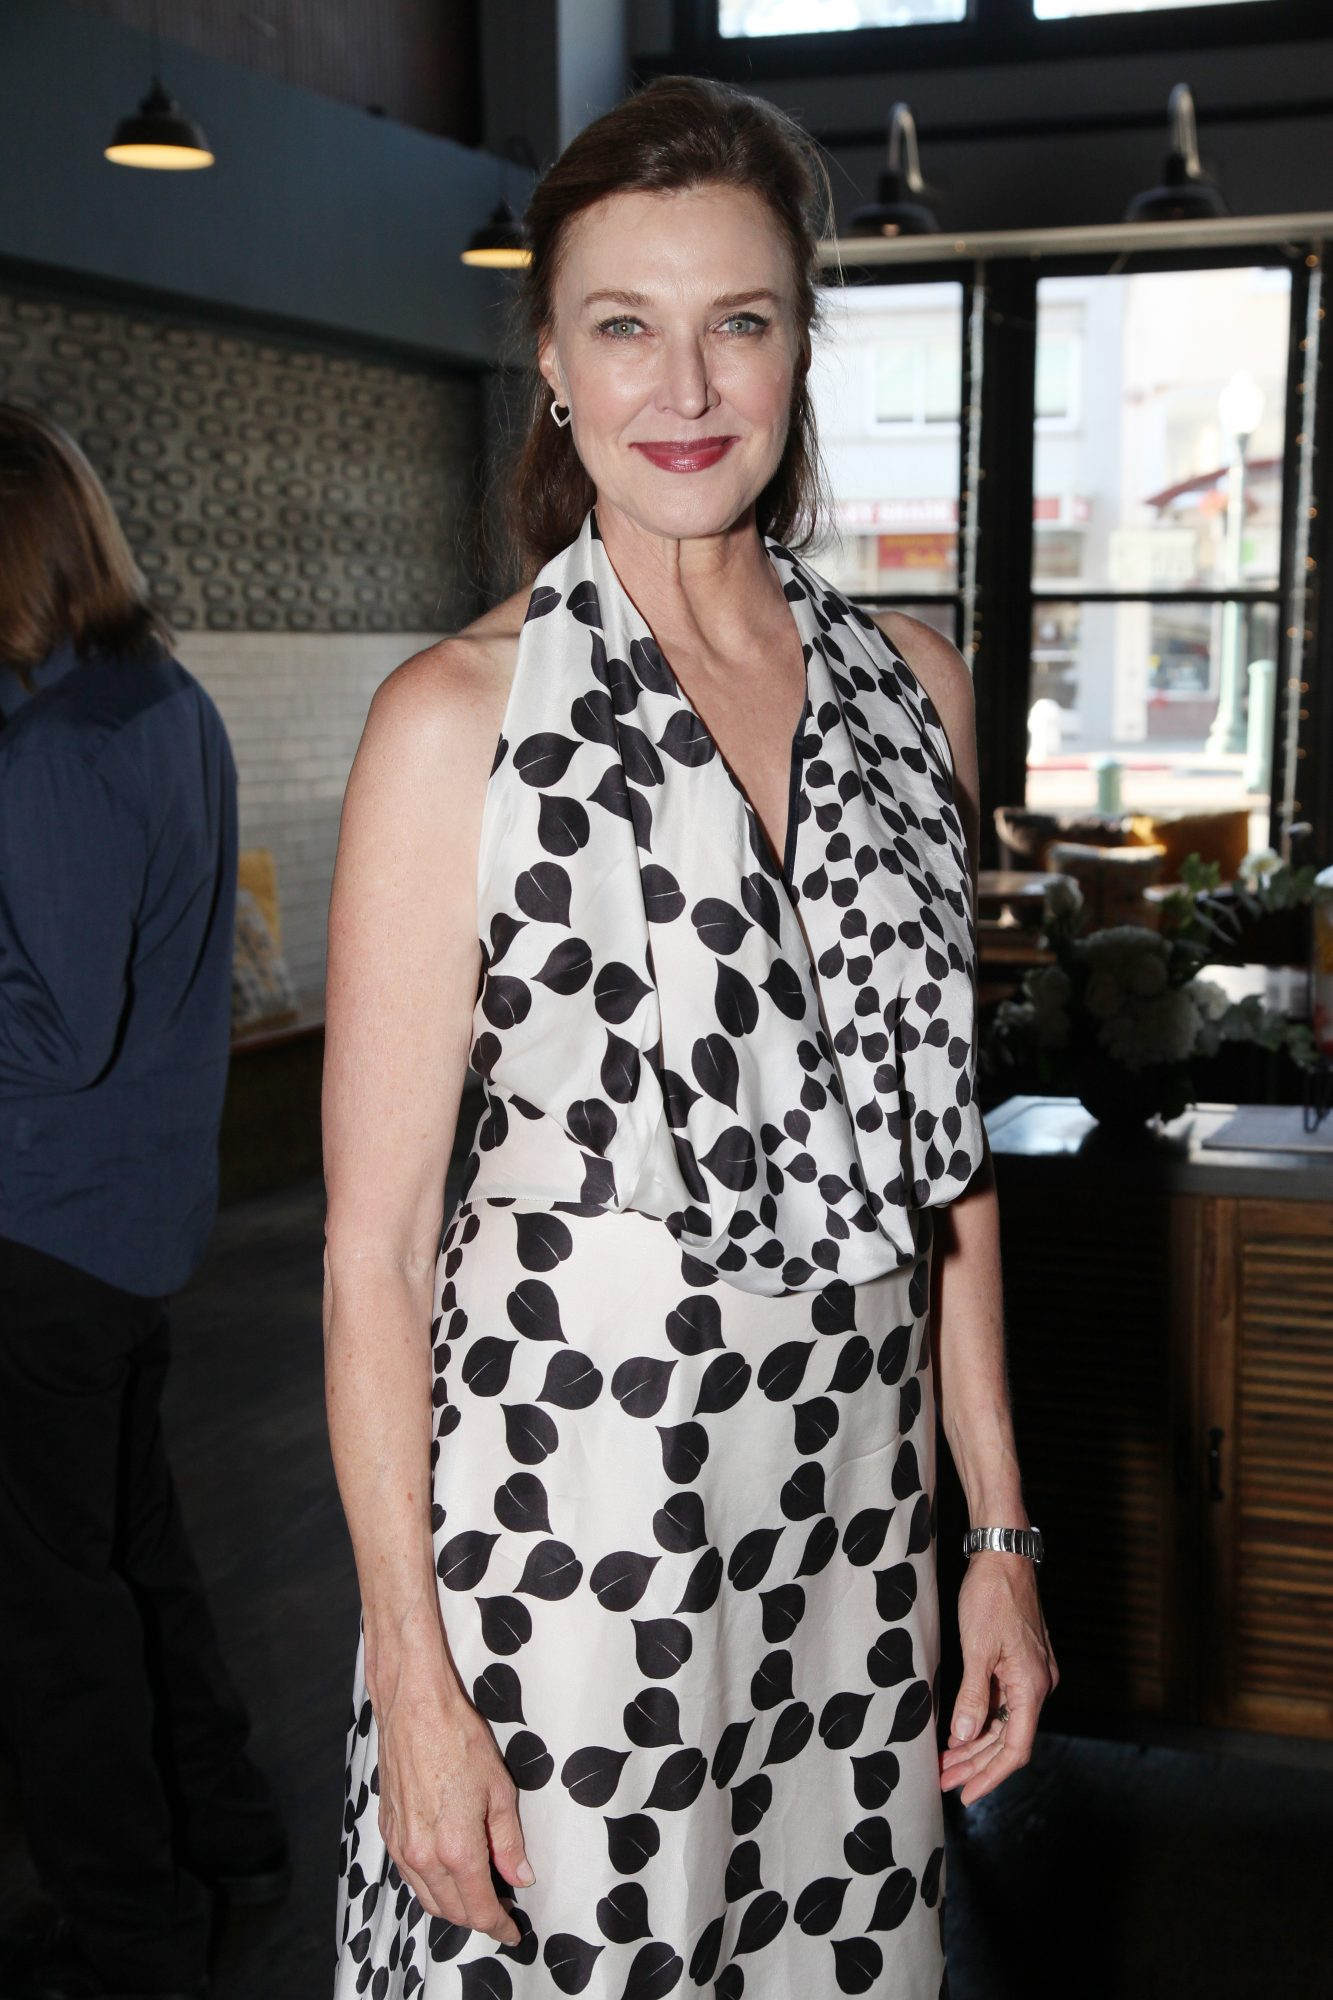 BERKELEY, CALIFORNIA - AUGUST 25: Brenda Strong is seen at Berkeley Social Club on August 25, 2019 in Berkeley, California. (Photo by Amber De Vos/Getty Images for Netflix)